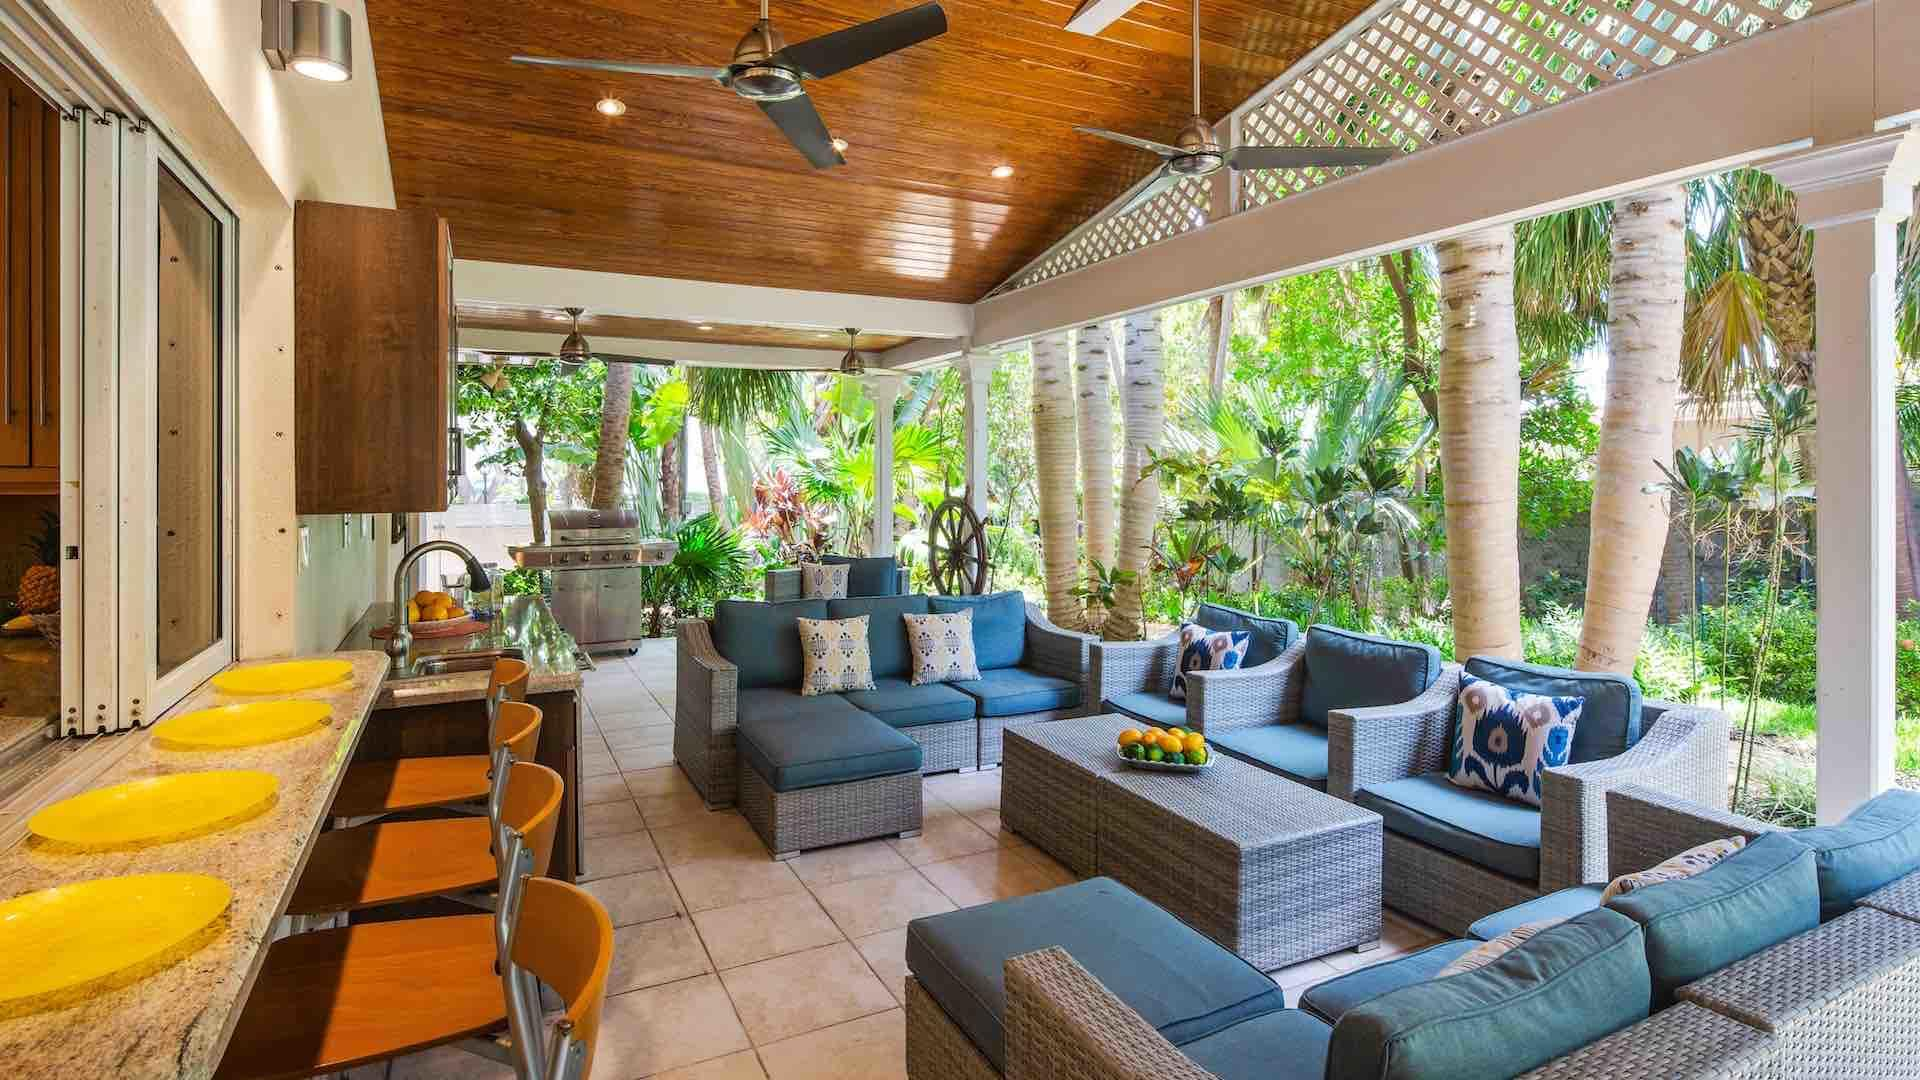 The covered back porch is the perfect place to enjoy the island breezes...